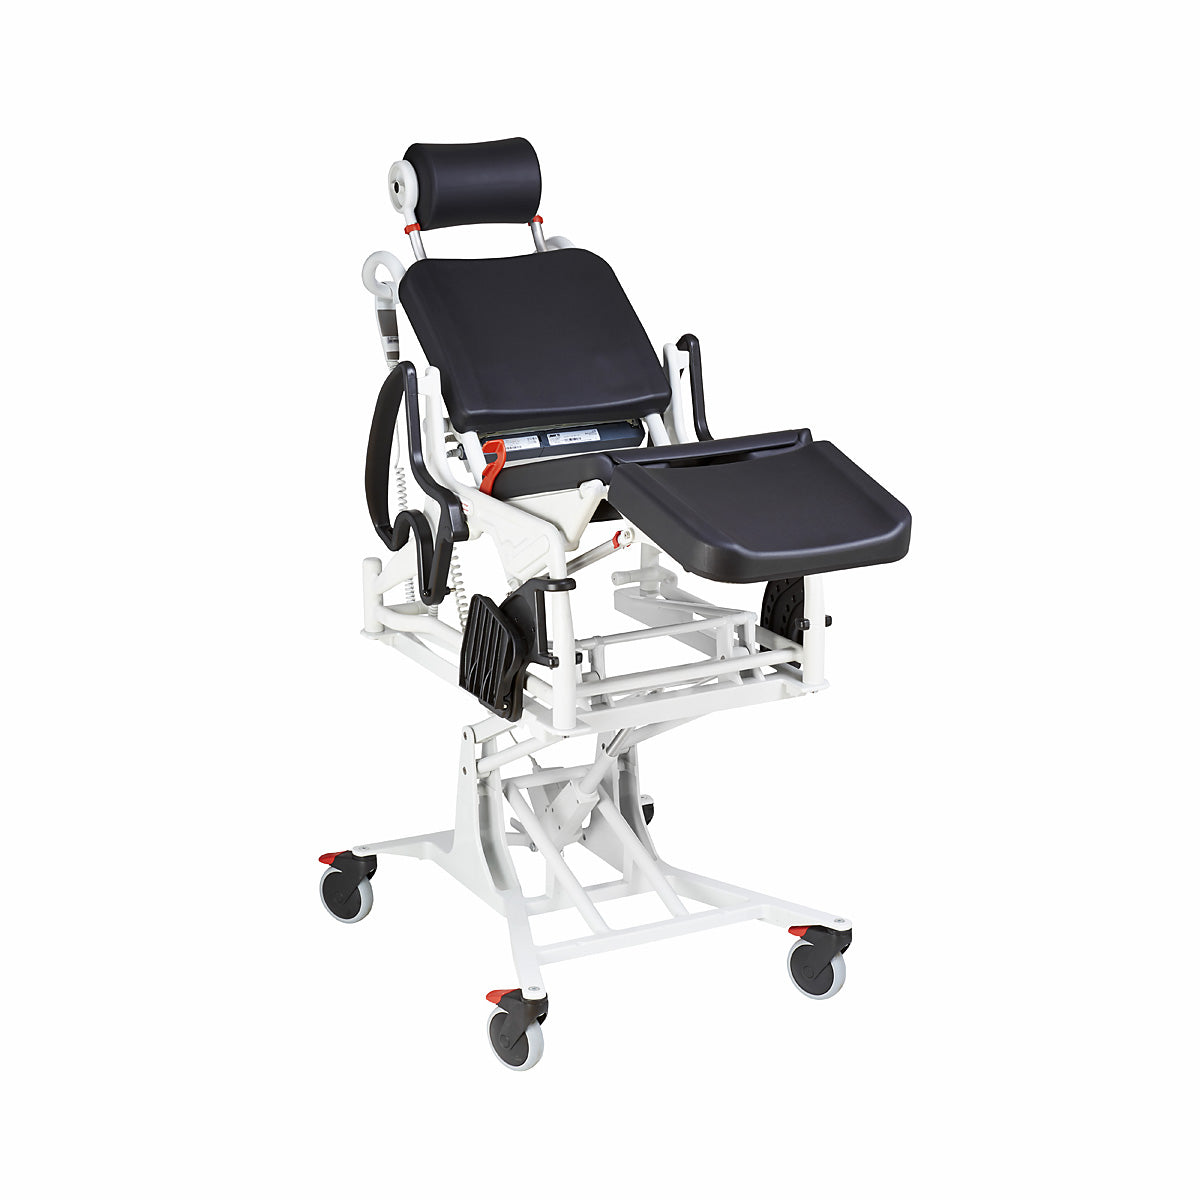 Rebotec Phoenix Multi - Tilt-in-Place and Power Lift Commode Shower Chair